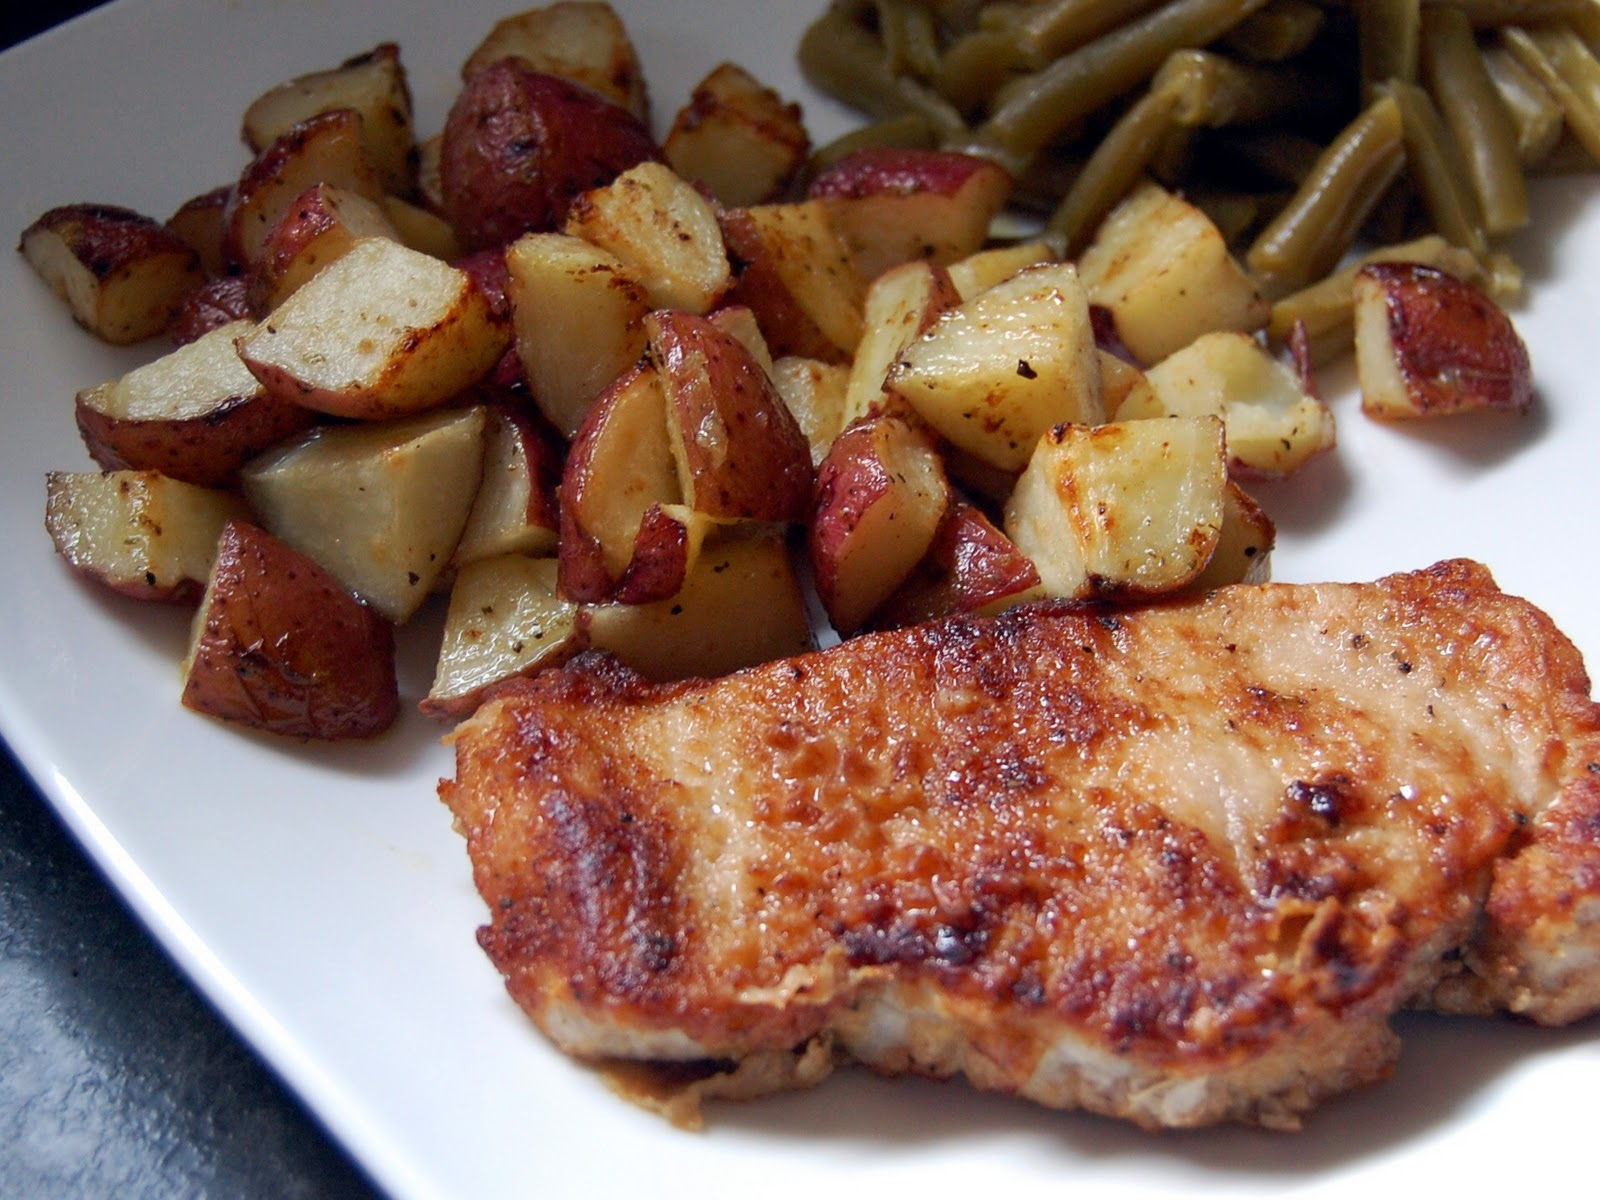 Twopacket Pork Chops And Ranchroasted Potatoes